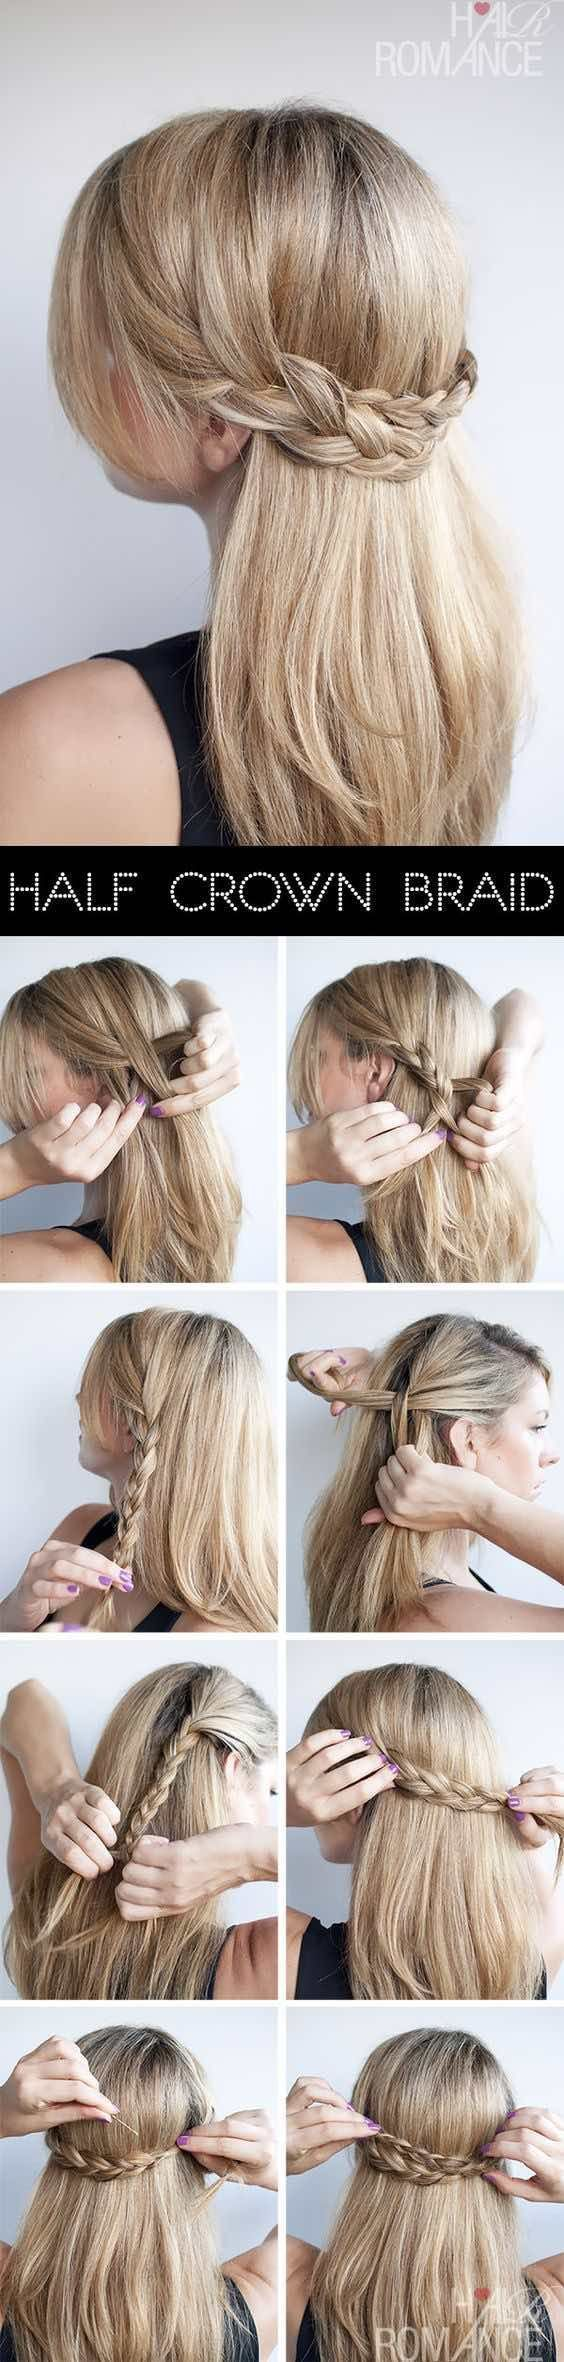 best 25+ diy wedding hair down ideas on pinterest | grad